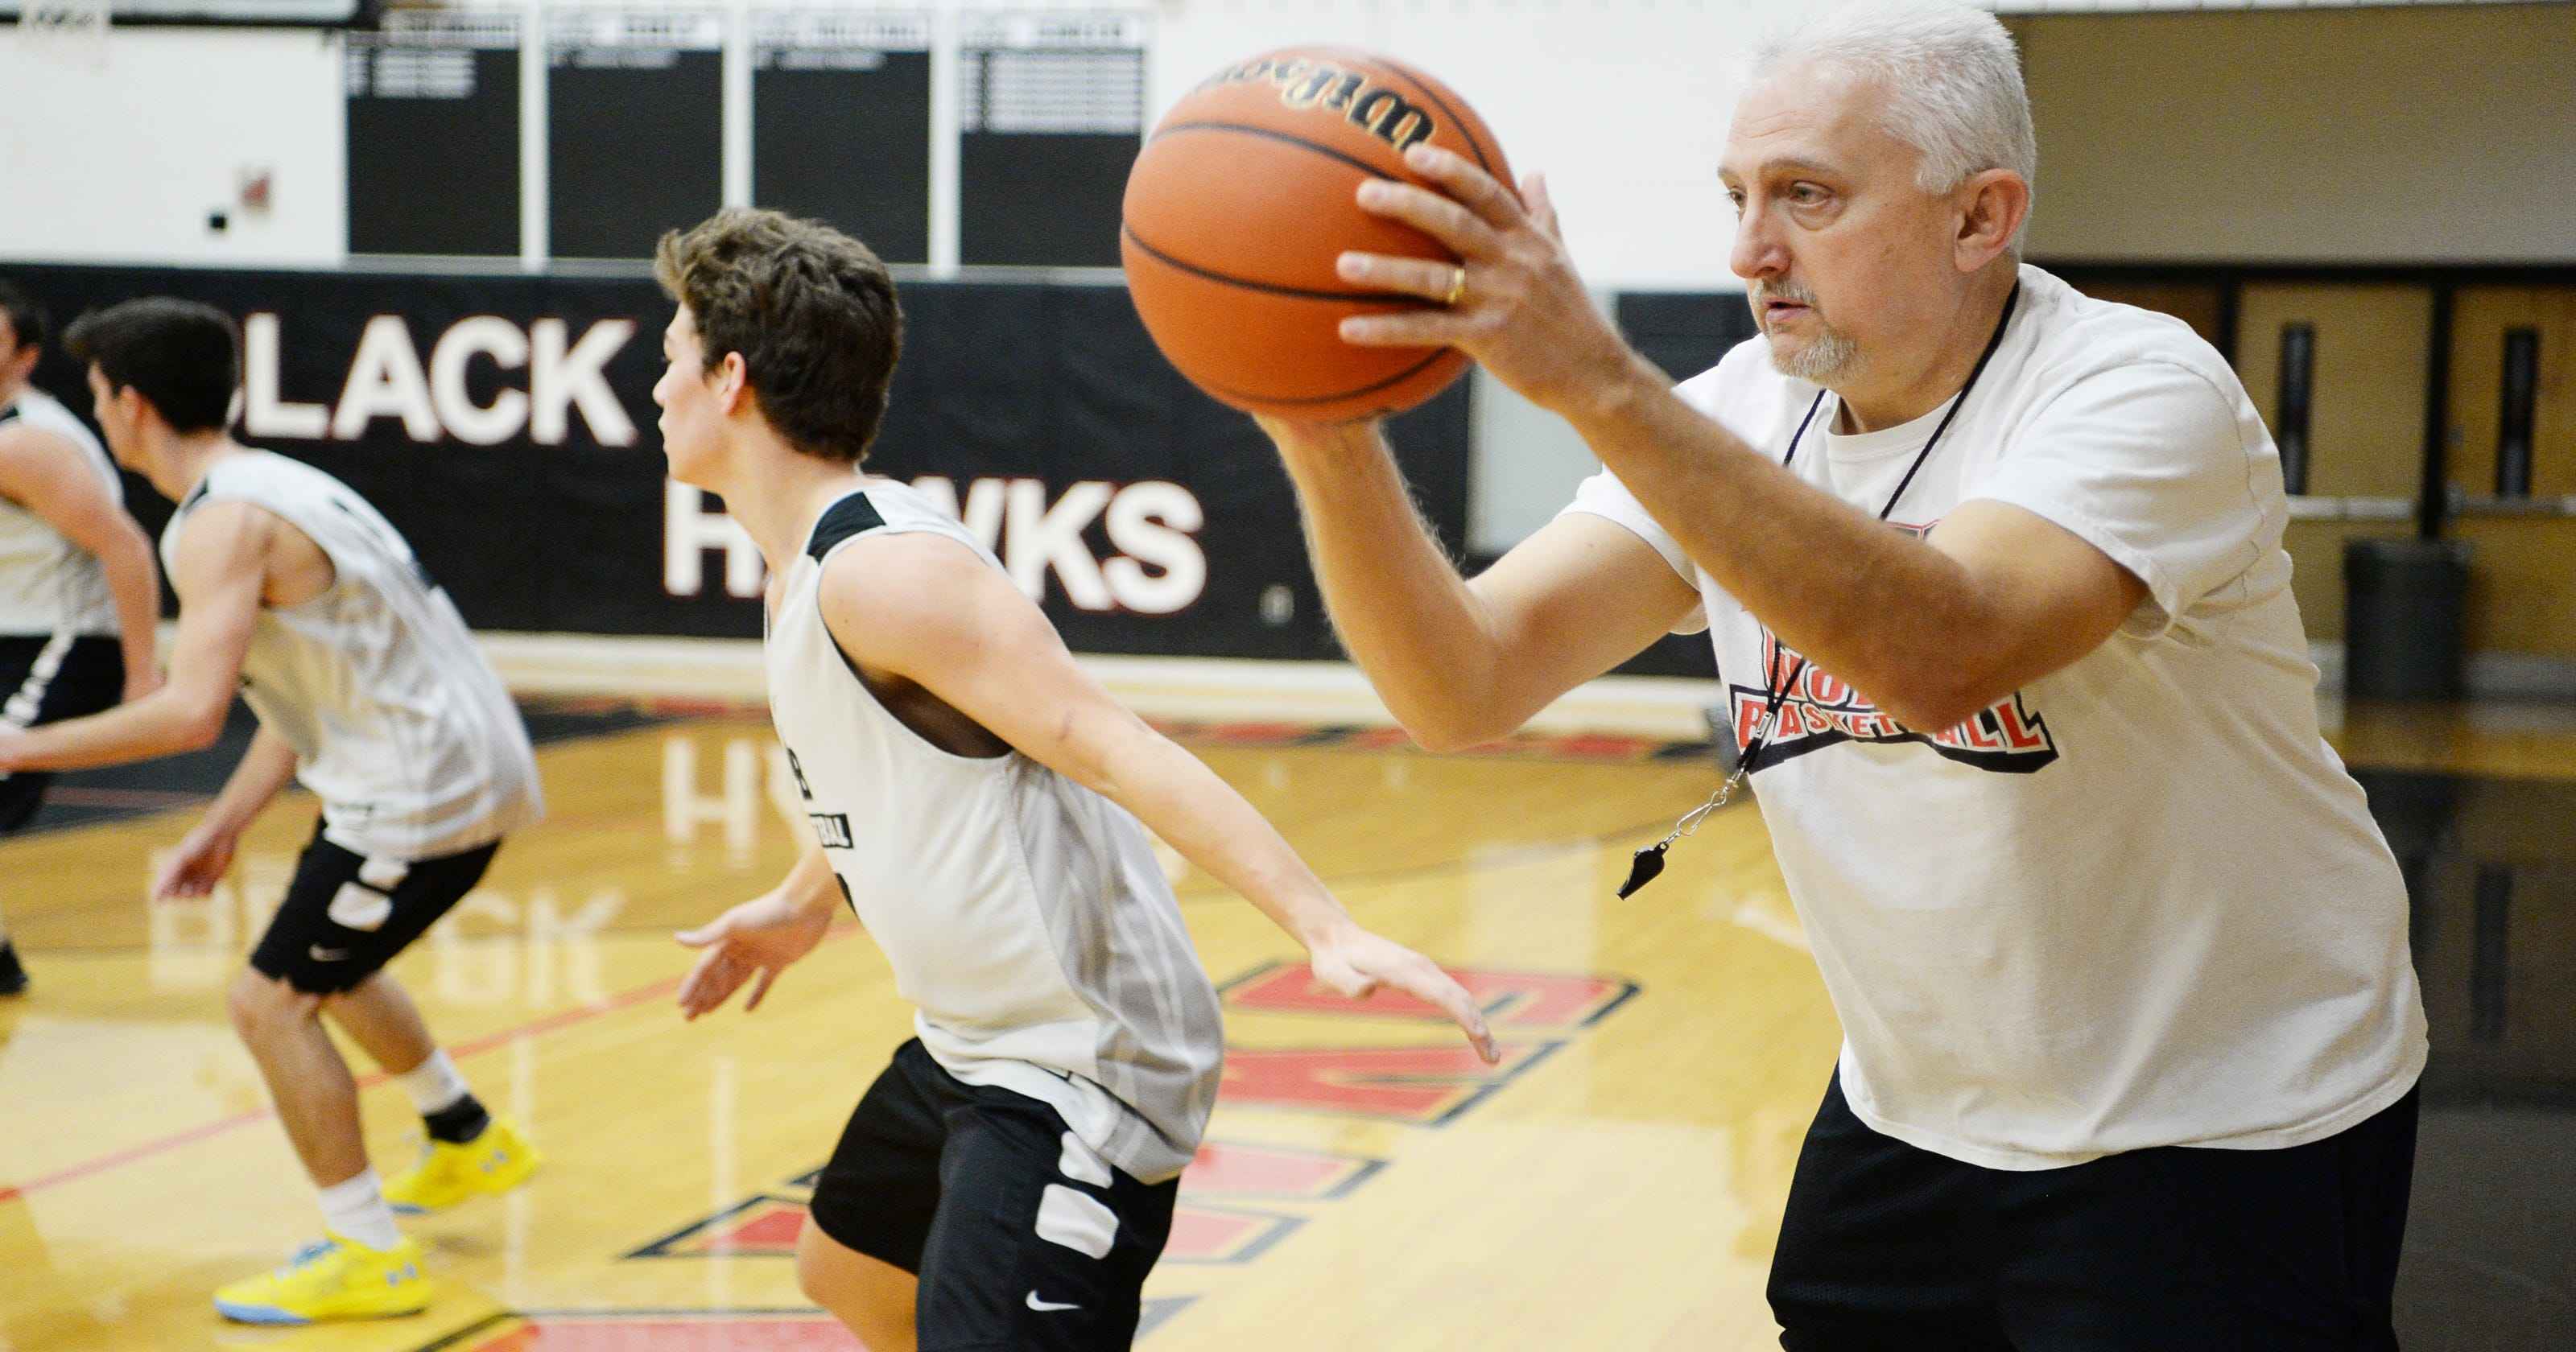 Change of pace has North Buncombe in the running